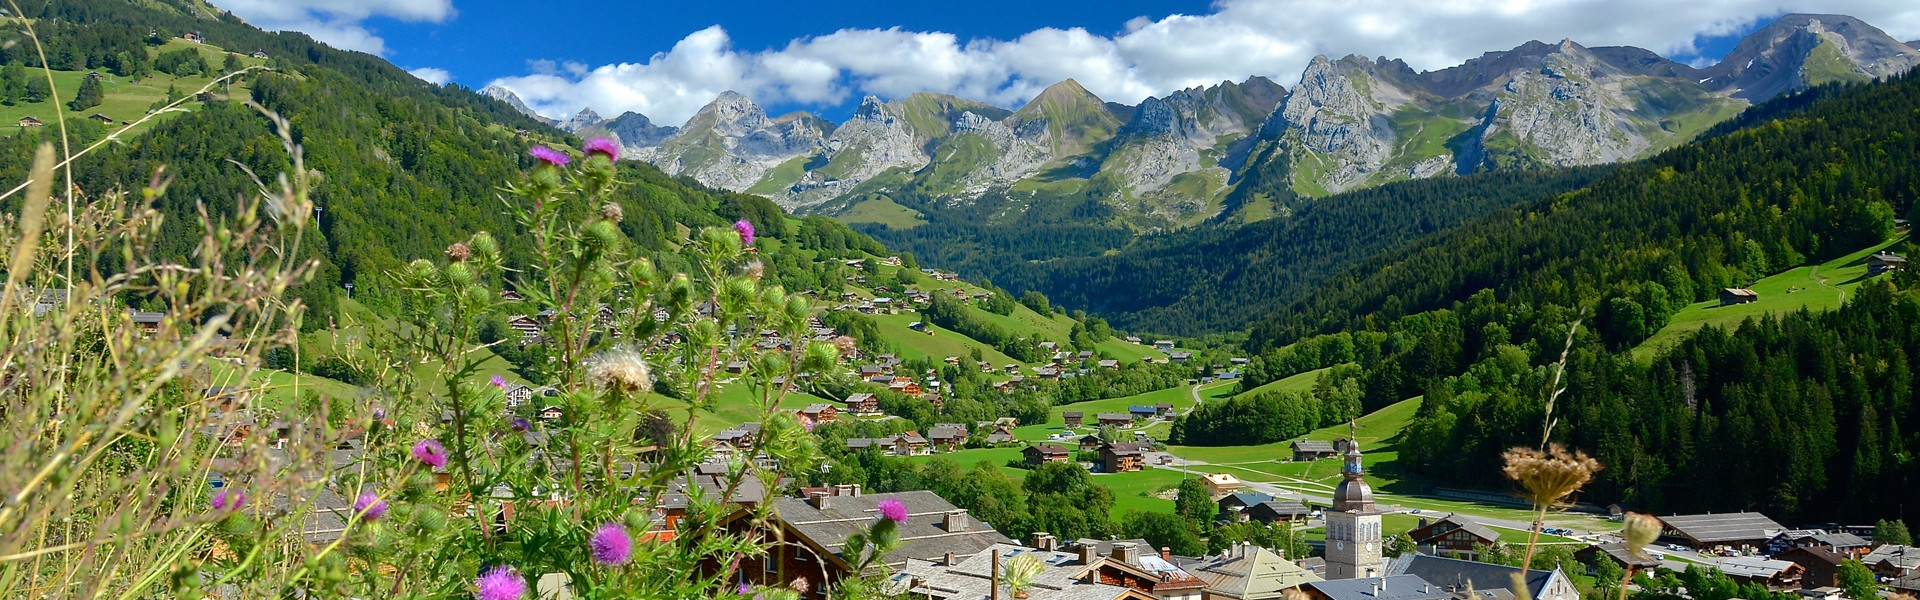 Grand-Bornand village summer